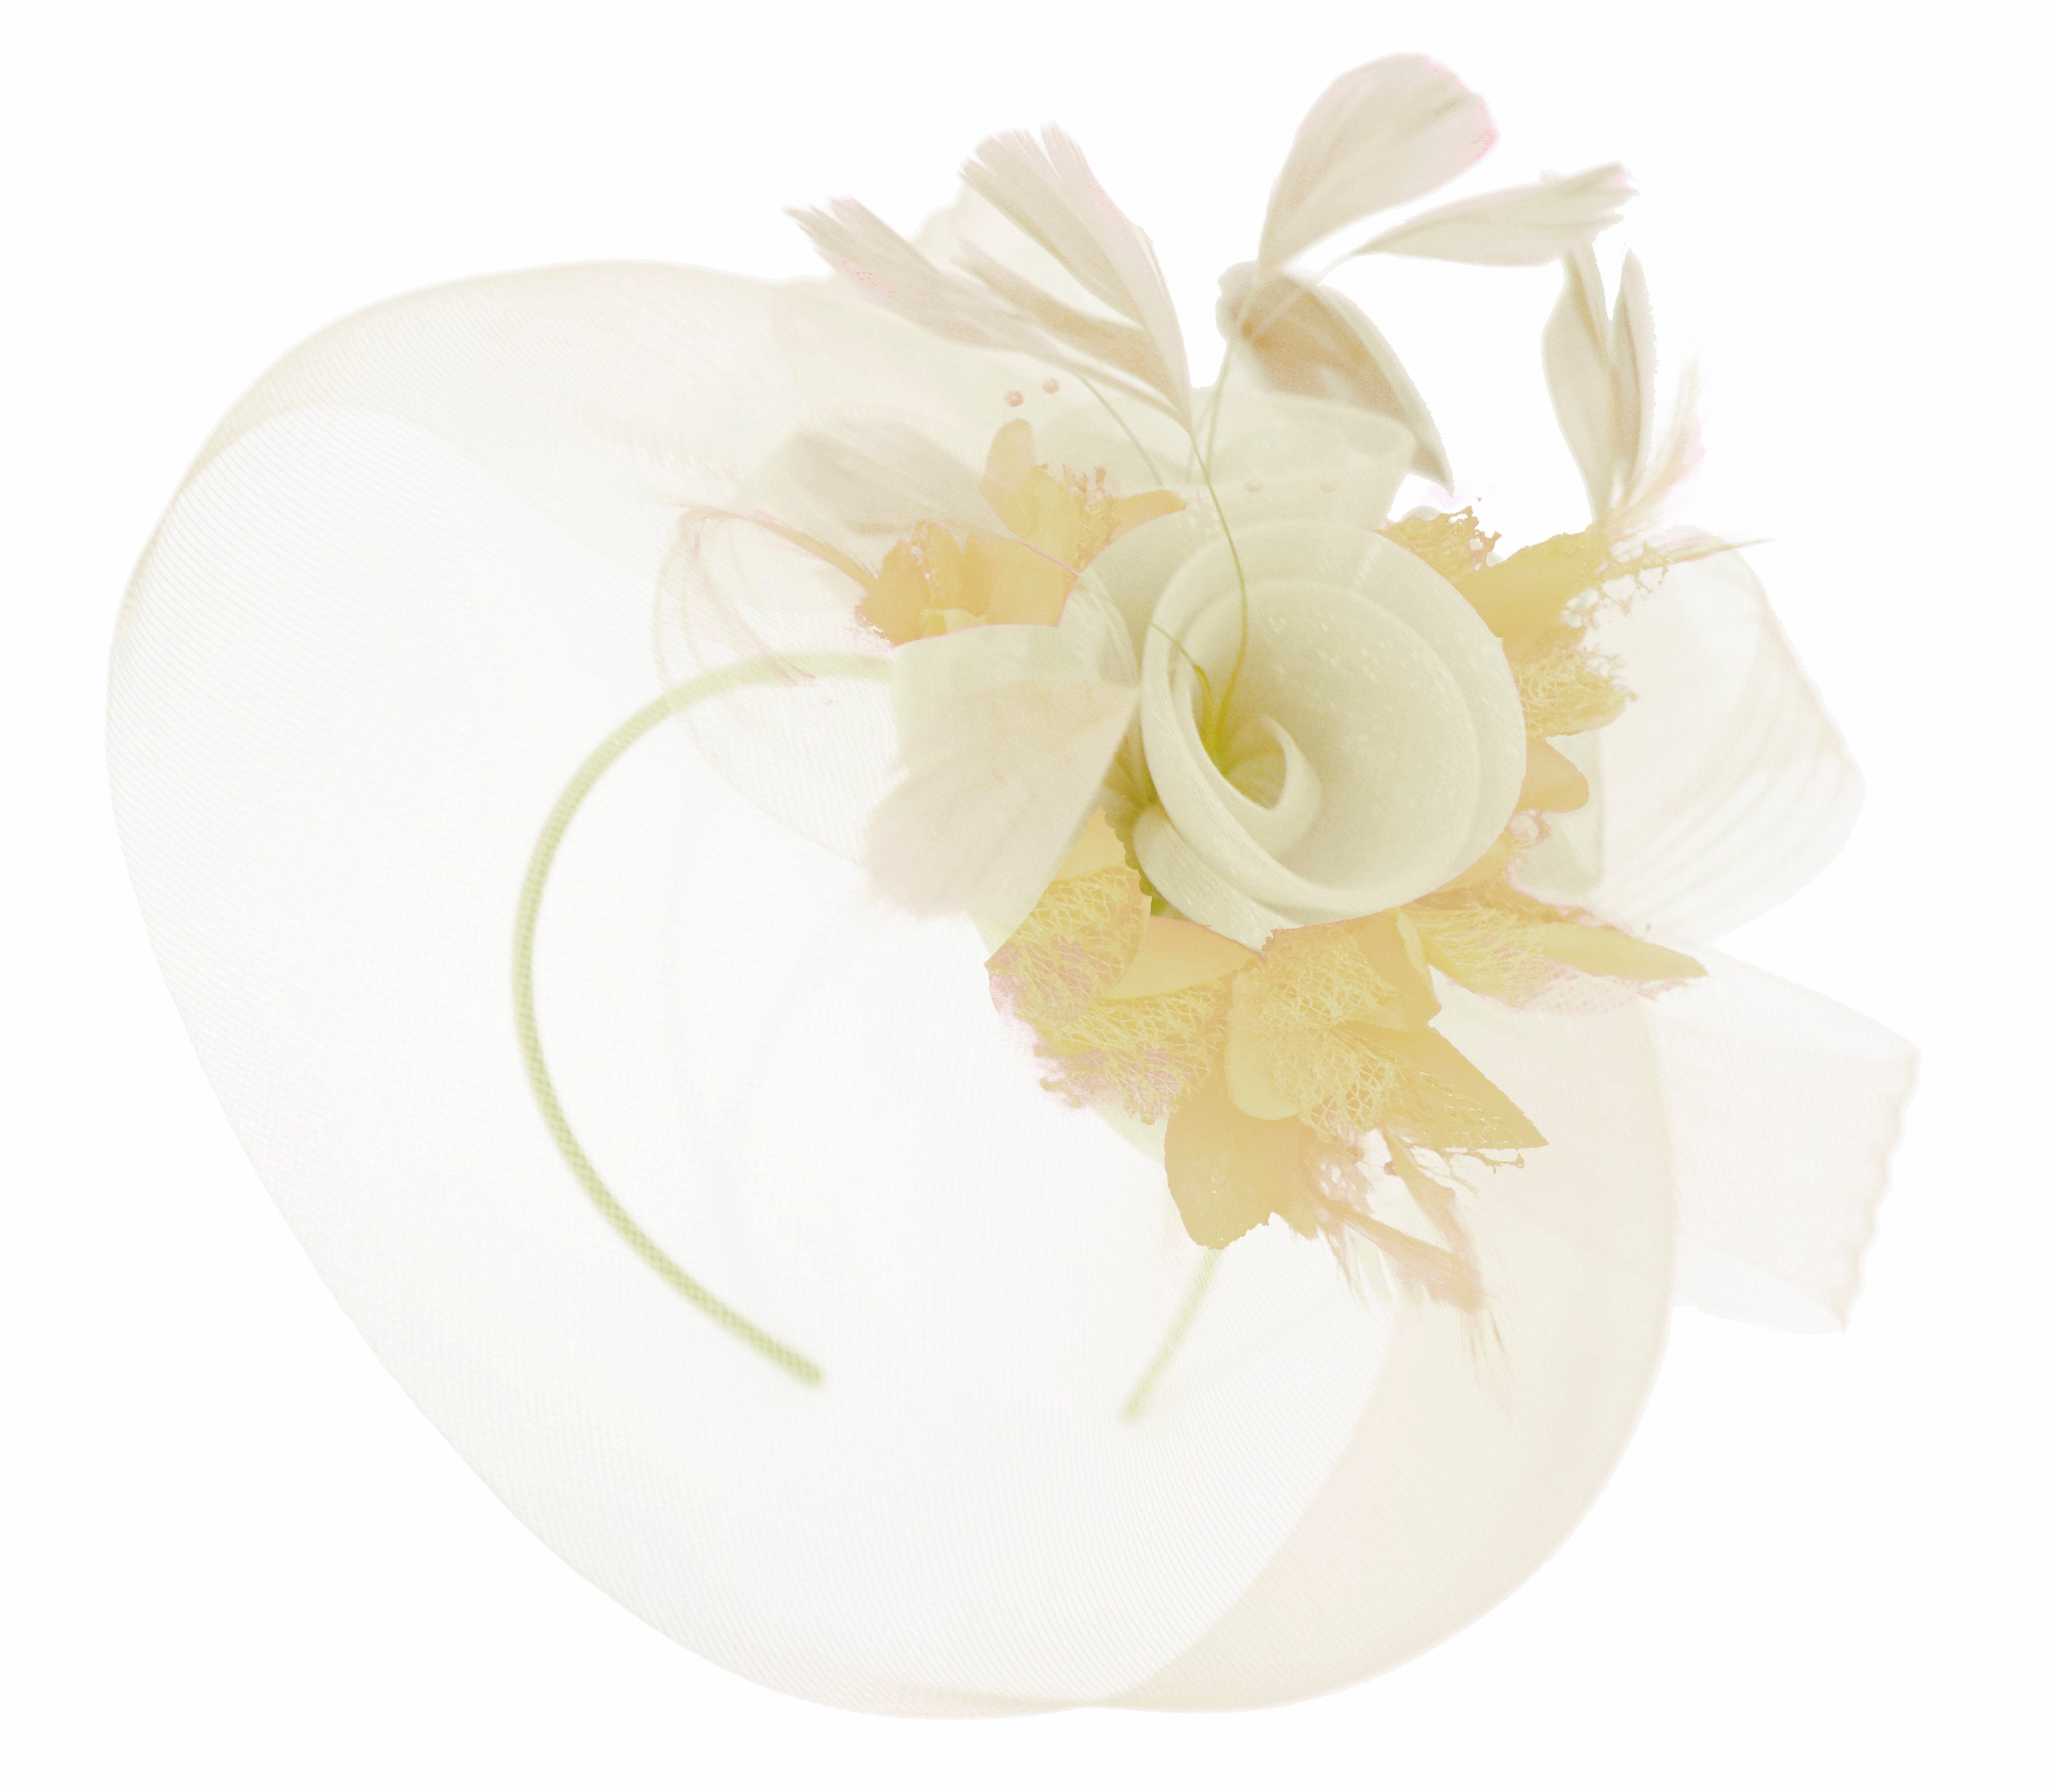 Caprilite Cream and Beige Fascinator on Headband Veil UK Wedding Ascot Races Hatinator Women